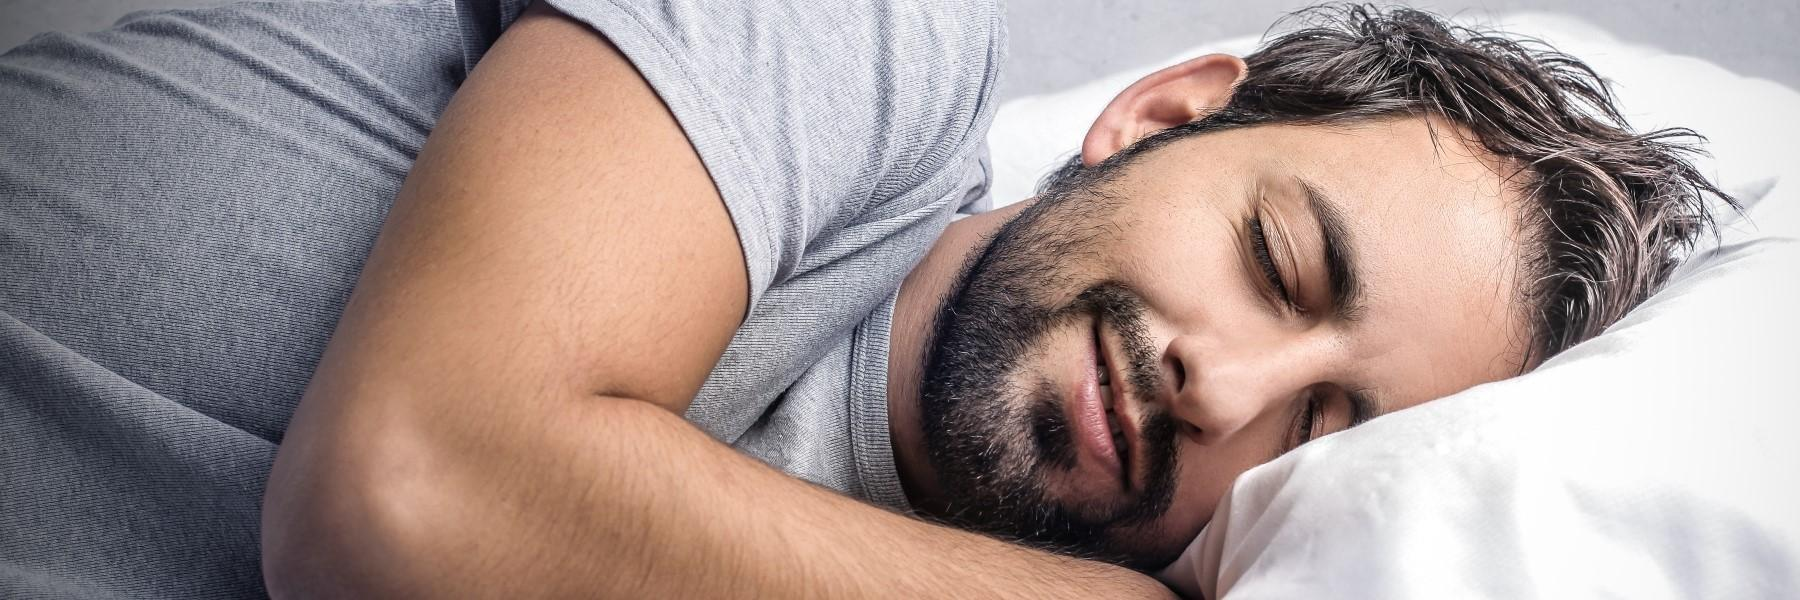 Sleep Apnea Treatment | Dentist